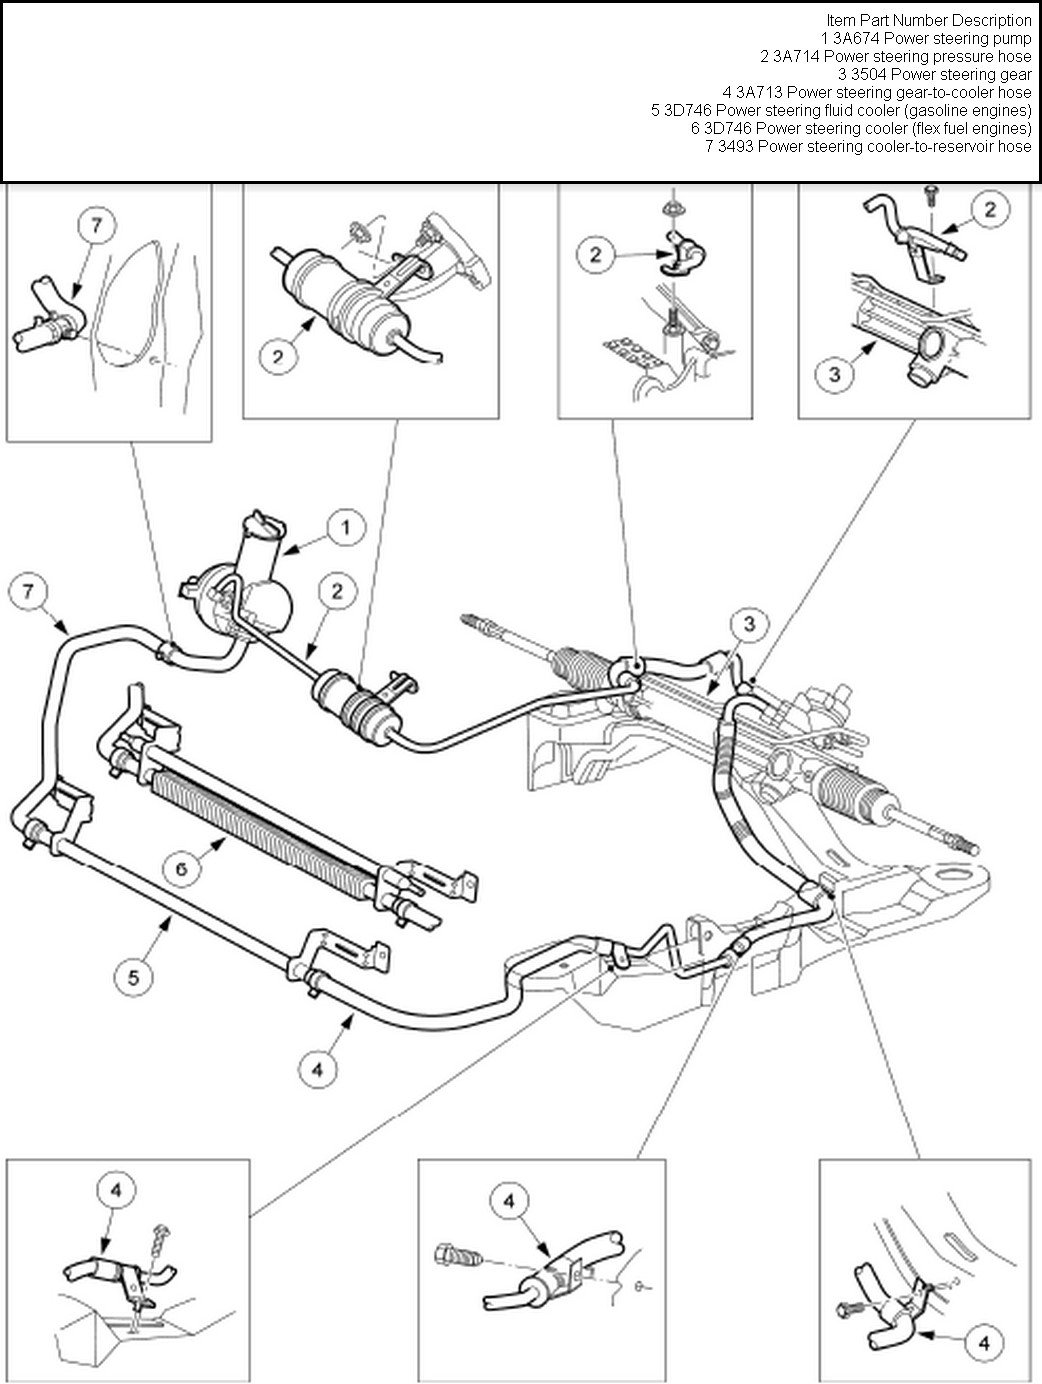 2000 ford focus power steering pump diagram  u2013 periodic